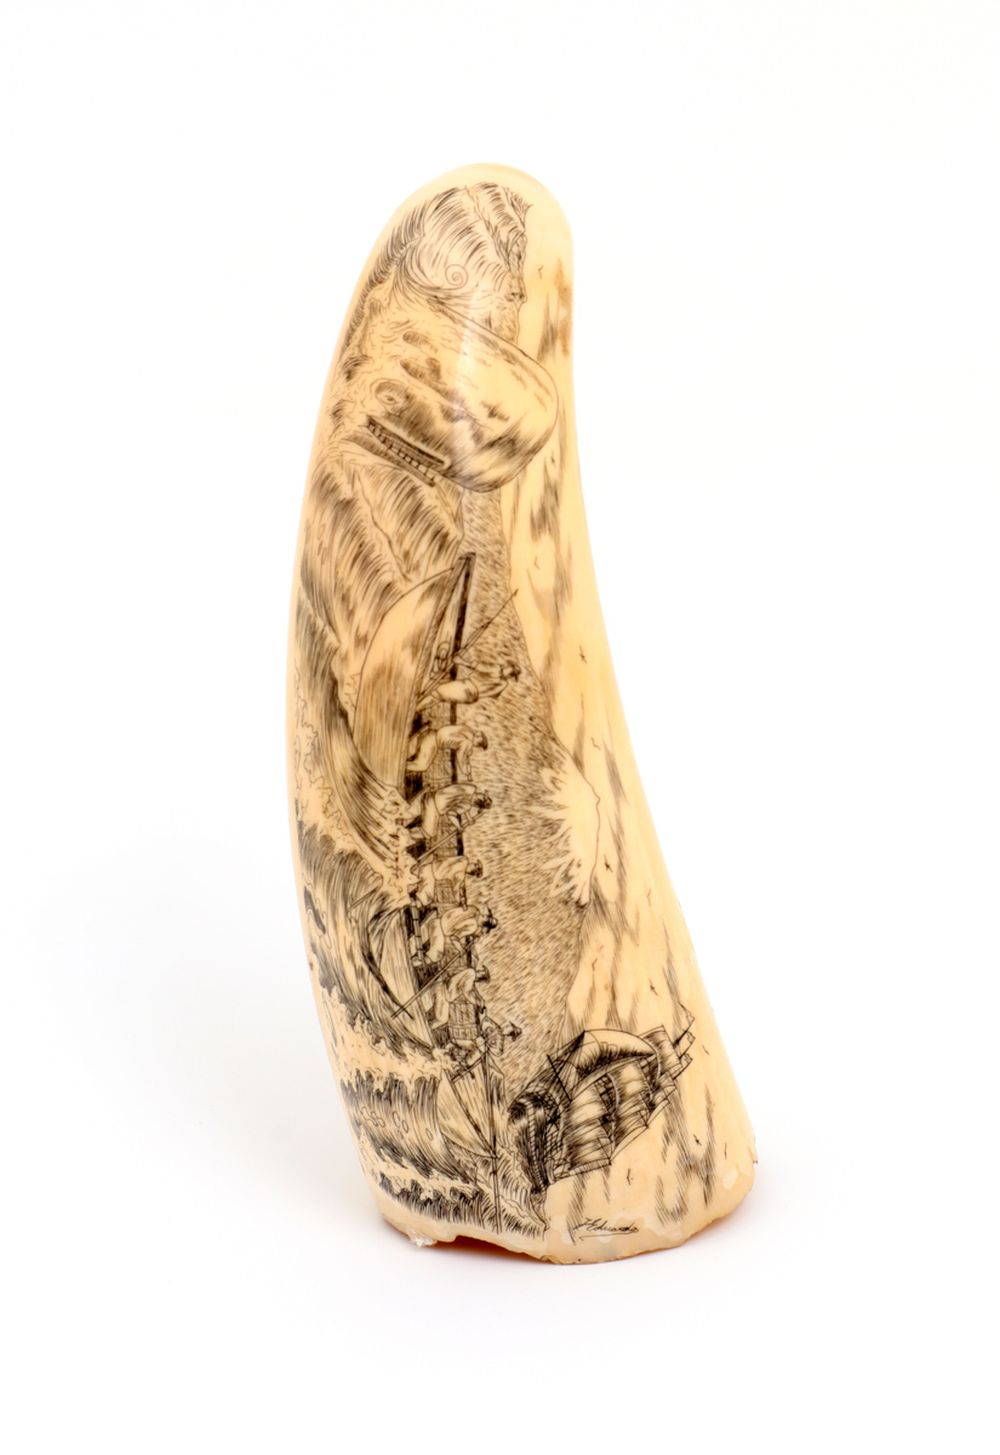 A SPERM WHALE TOOTH - SCRIMSHAW